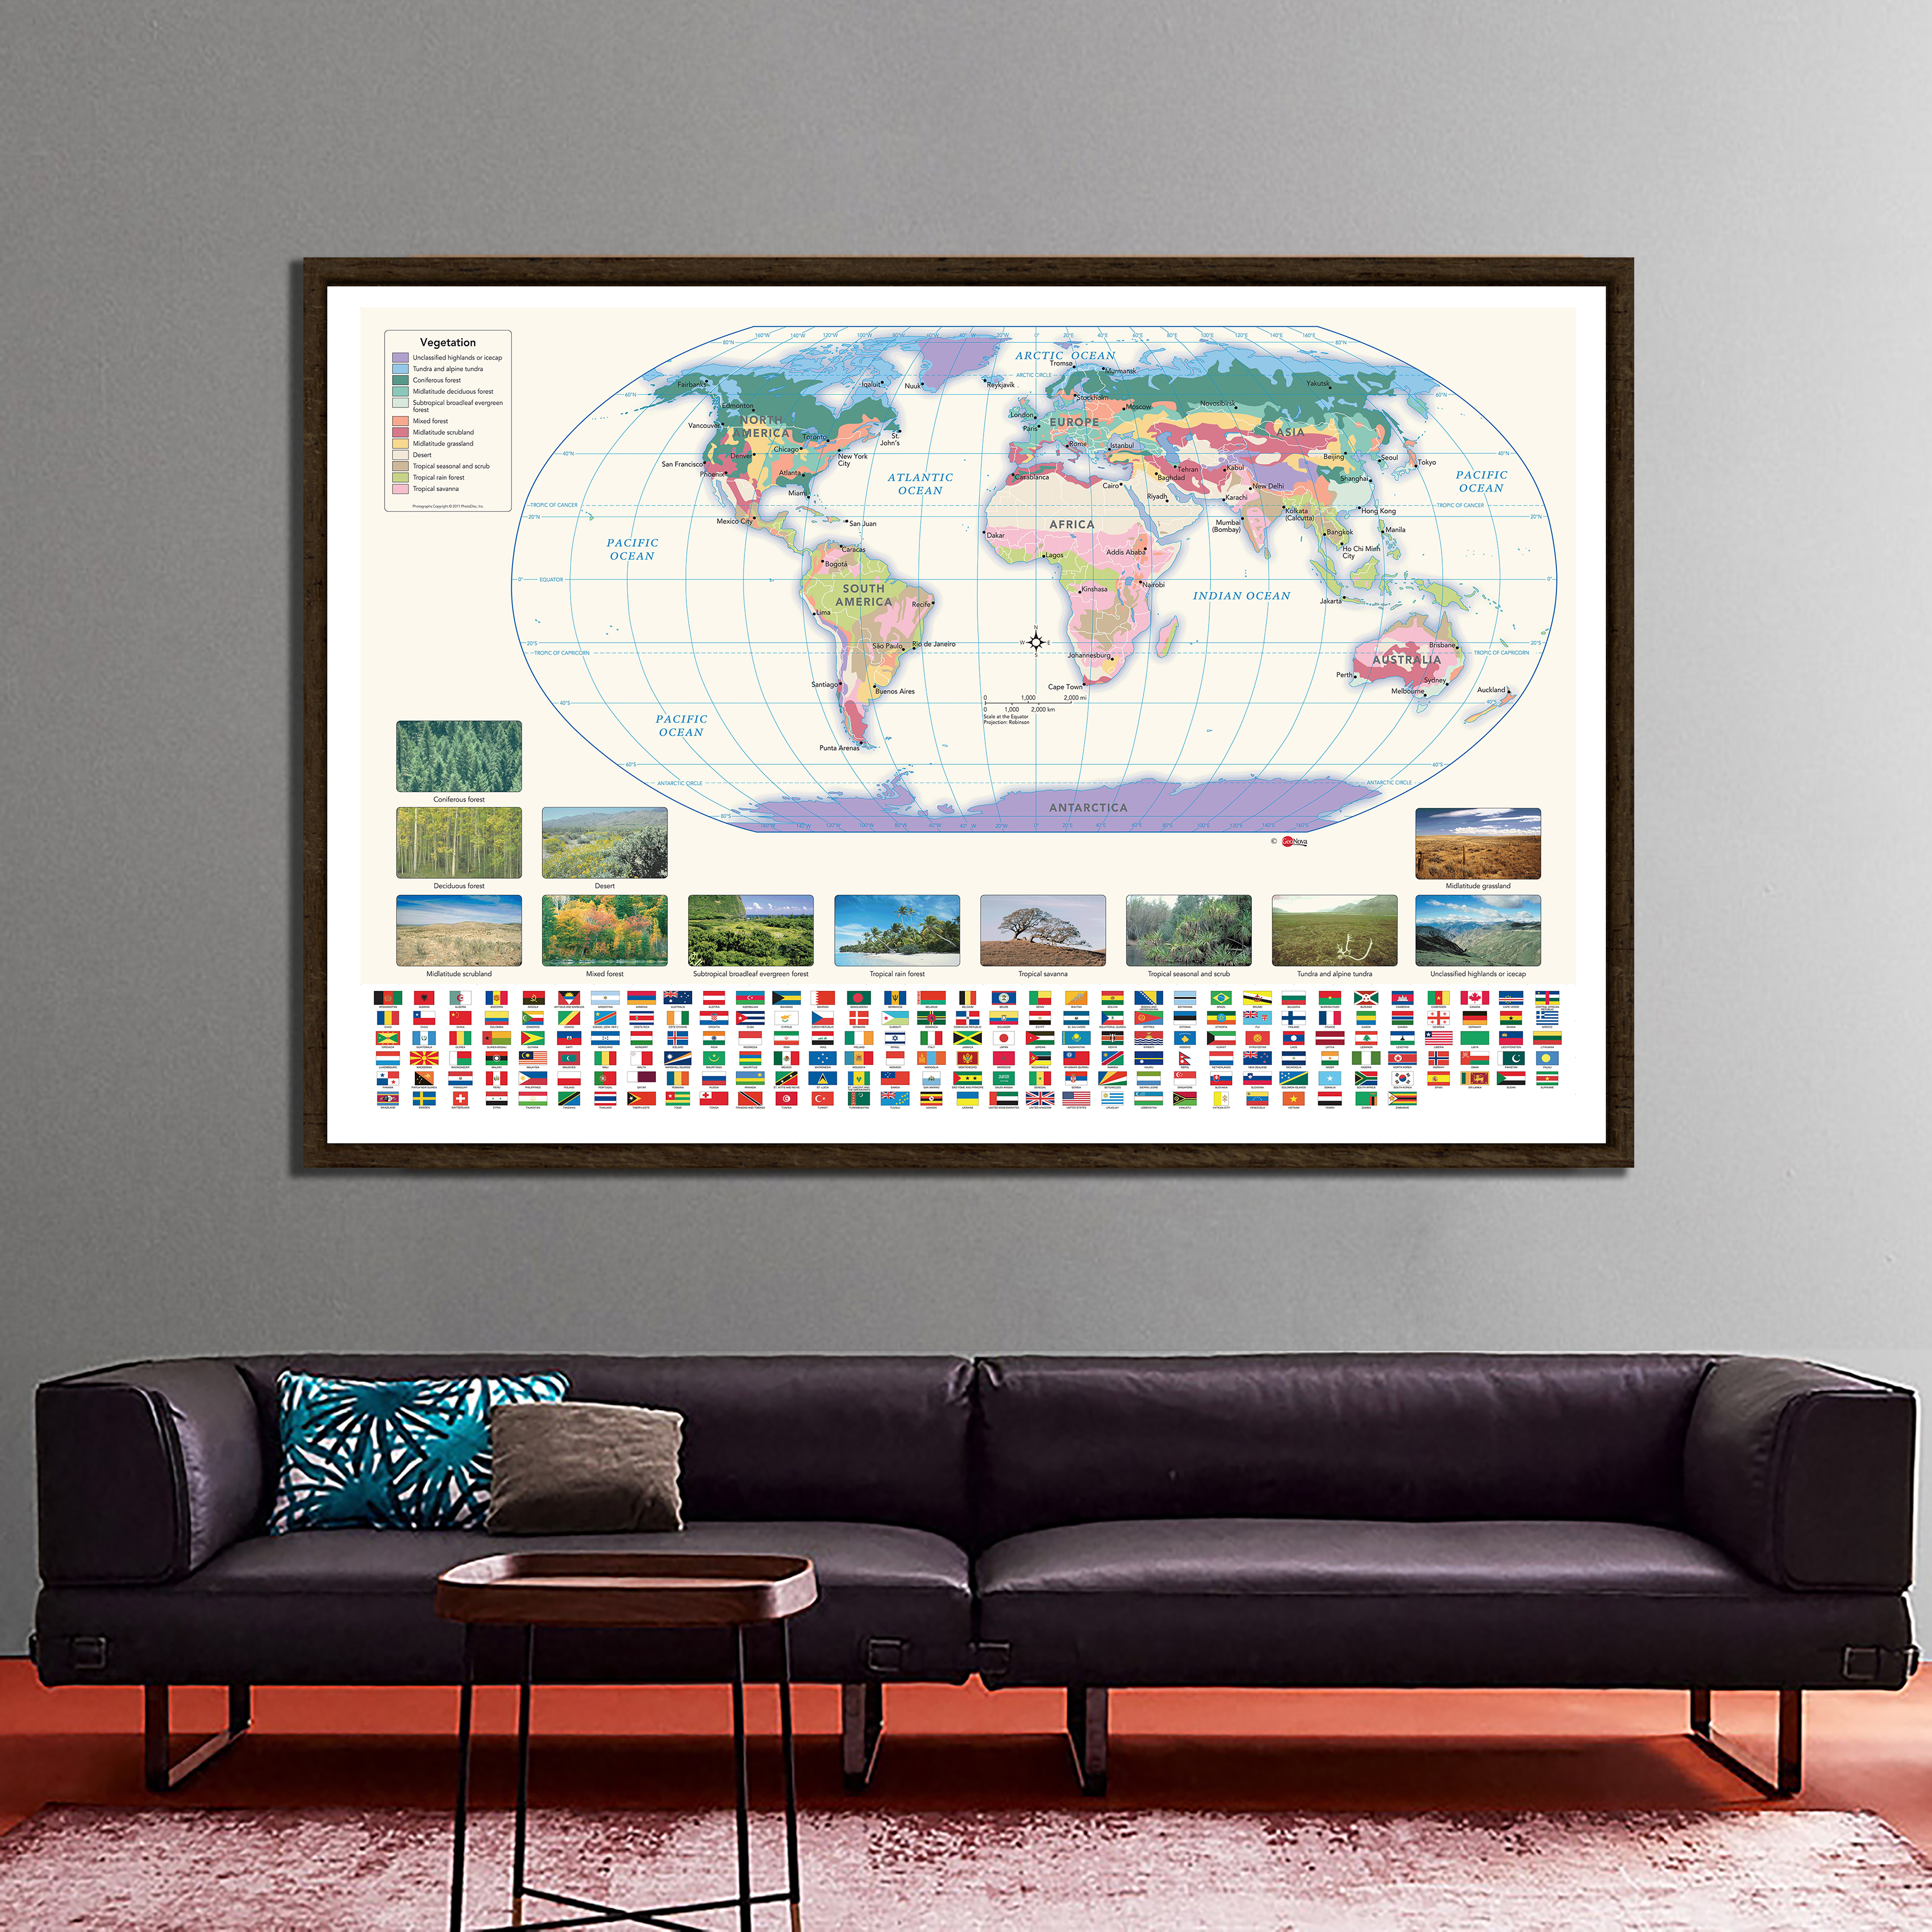 150x100cm The World Non-woven Map With Vegetation Map And National Flags